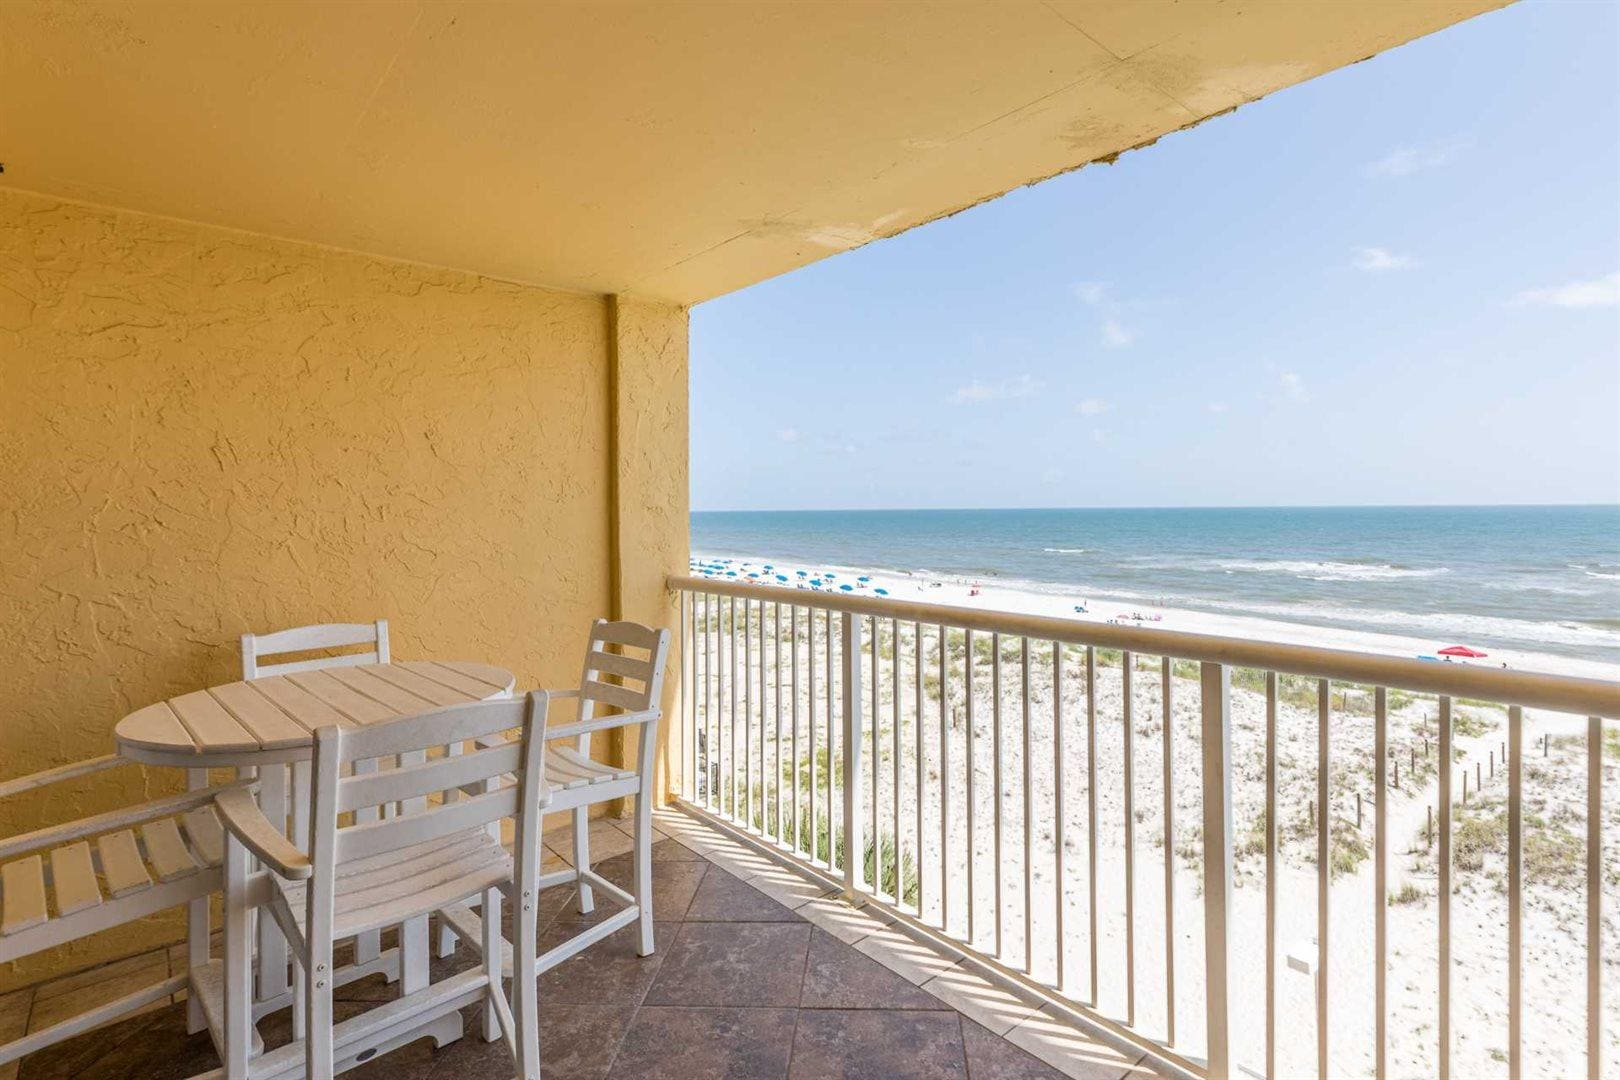 Oceanfront Condo with Beautiful Coastline View